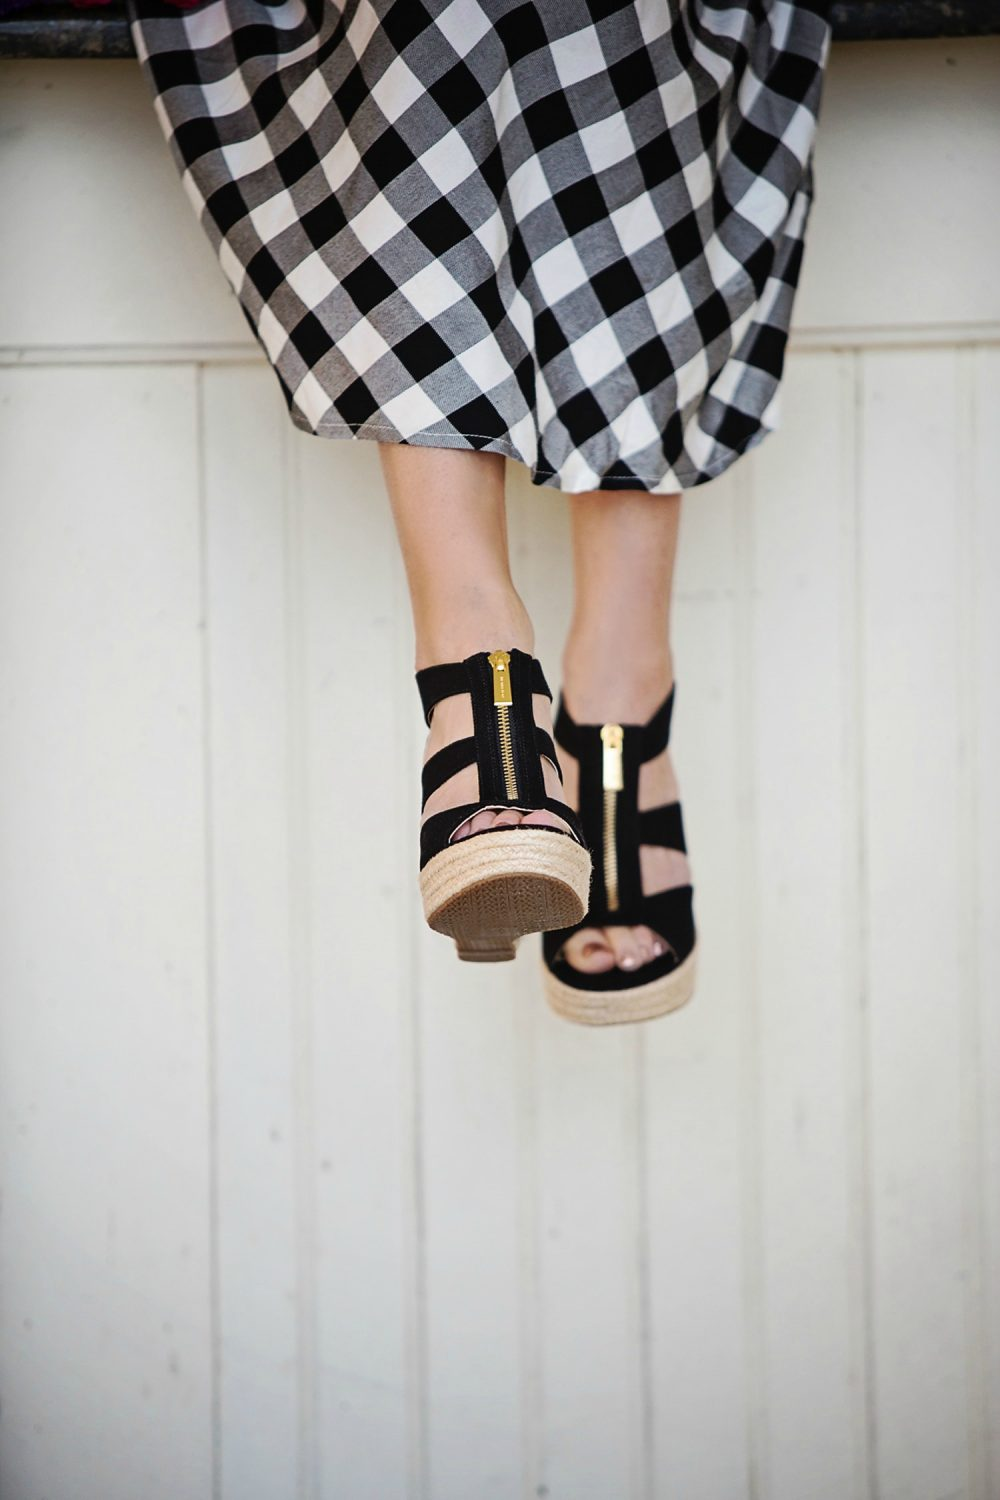 The Motherchic wearing Michael Kors wedges and gingham dress